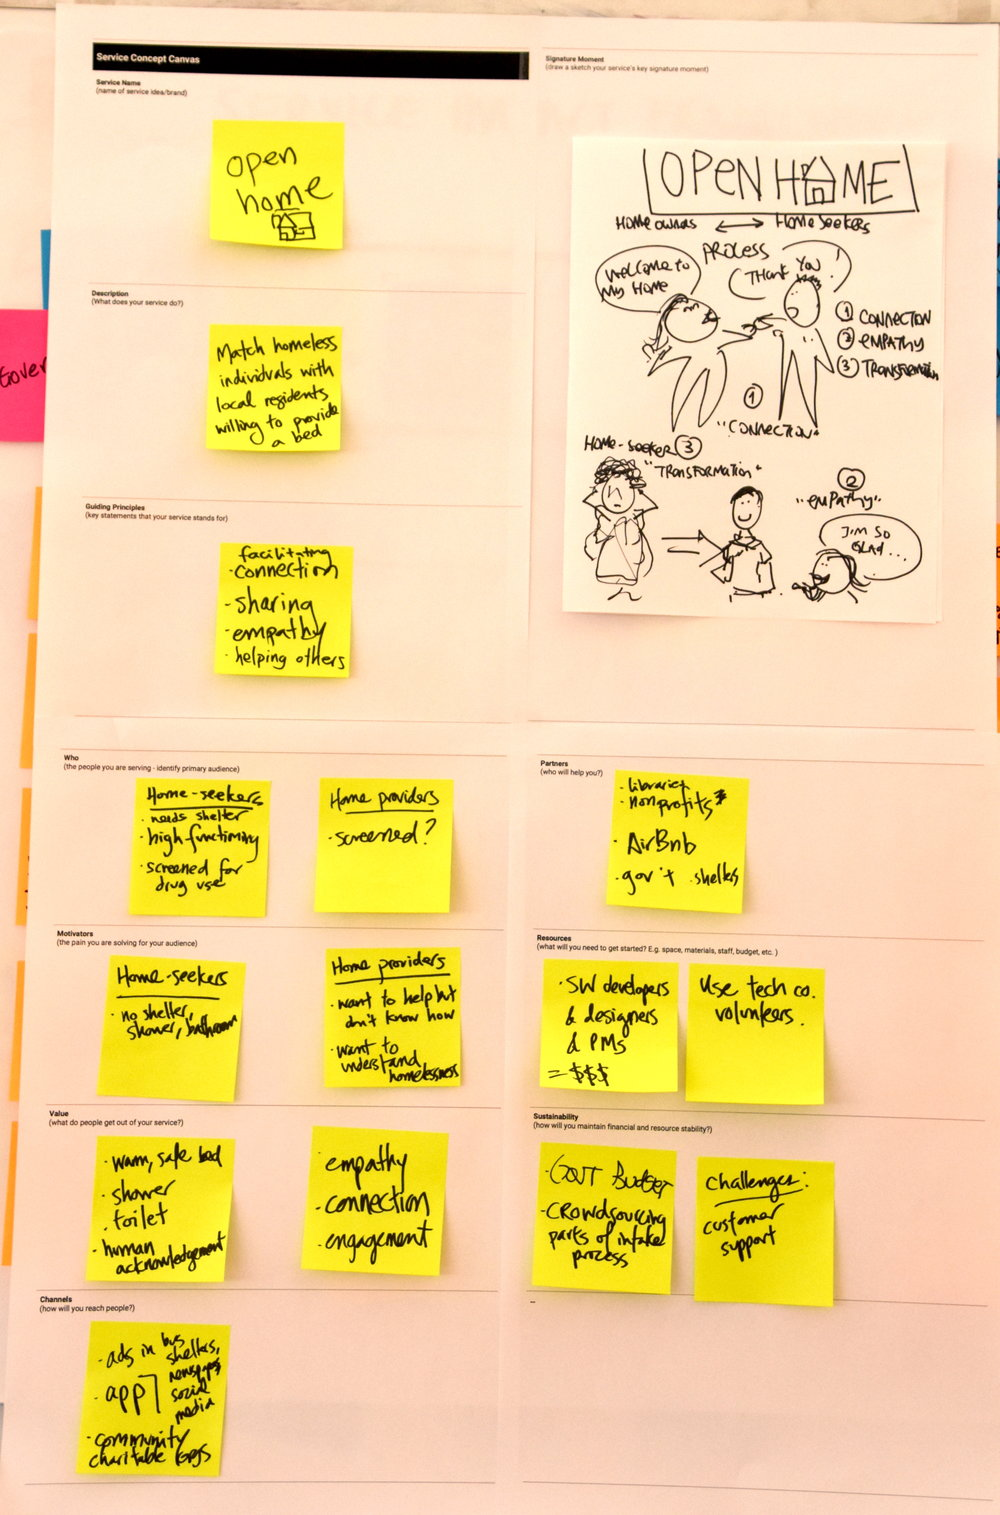 Example Service Concept Canvas filled out